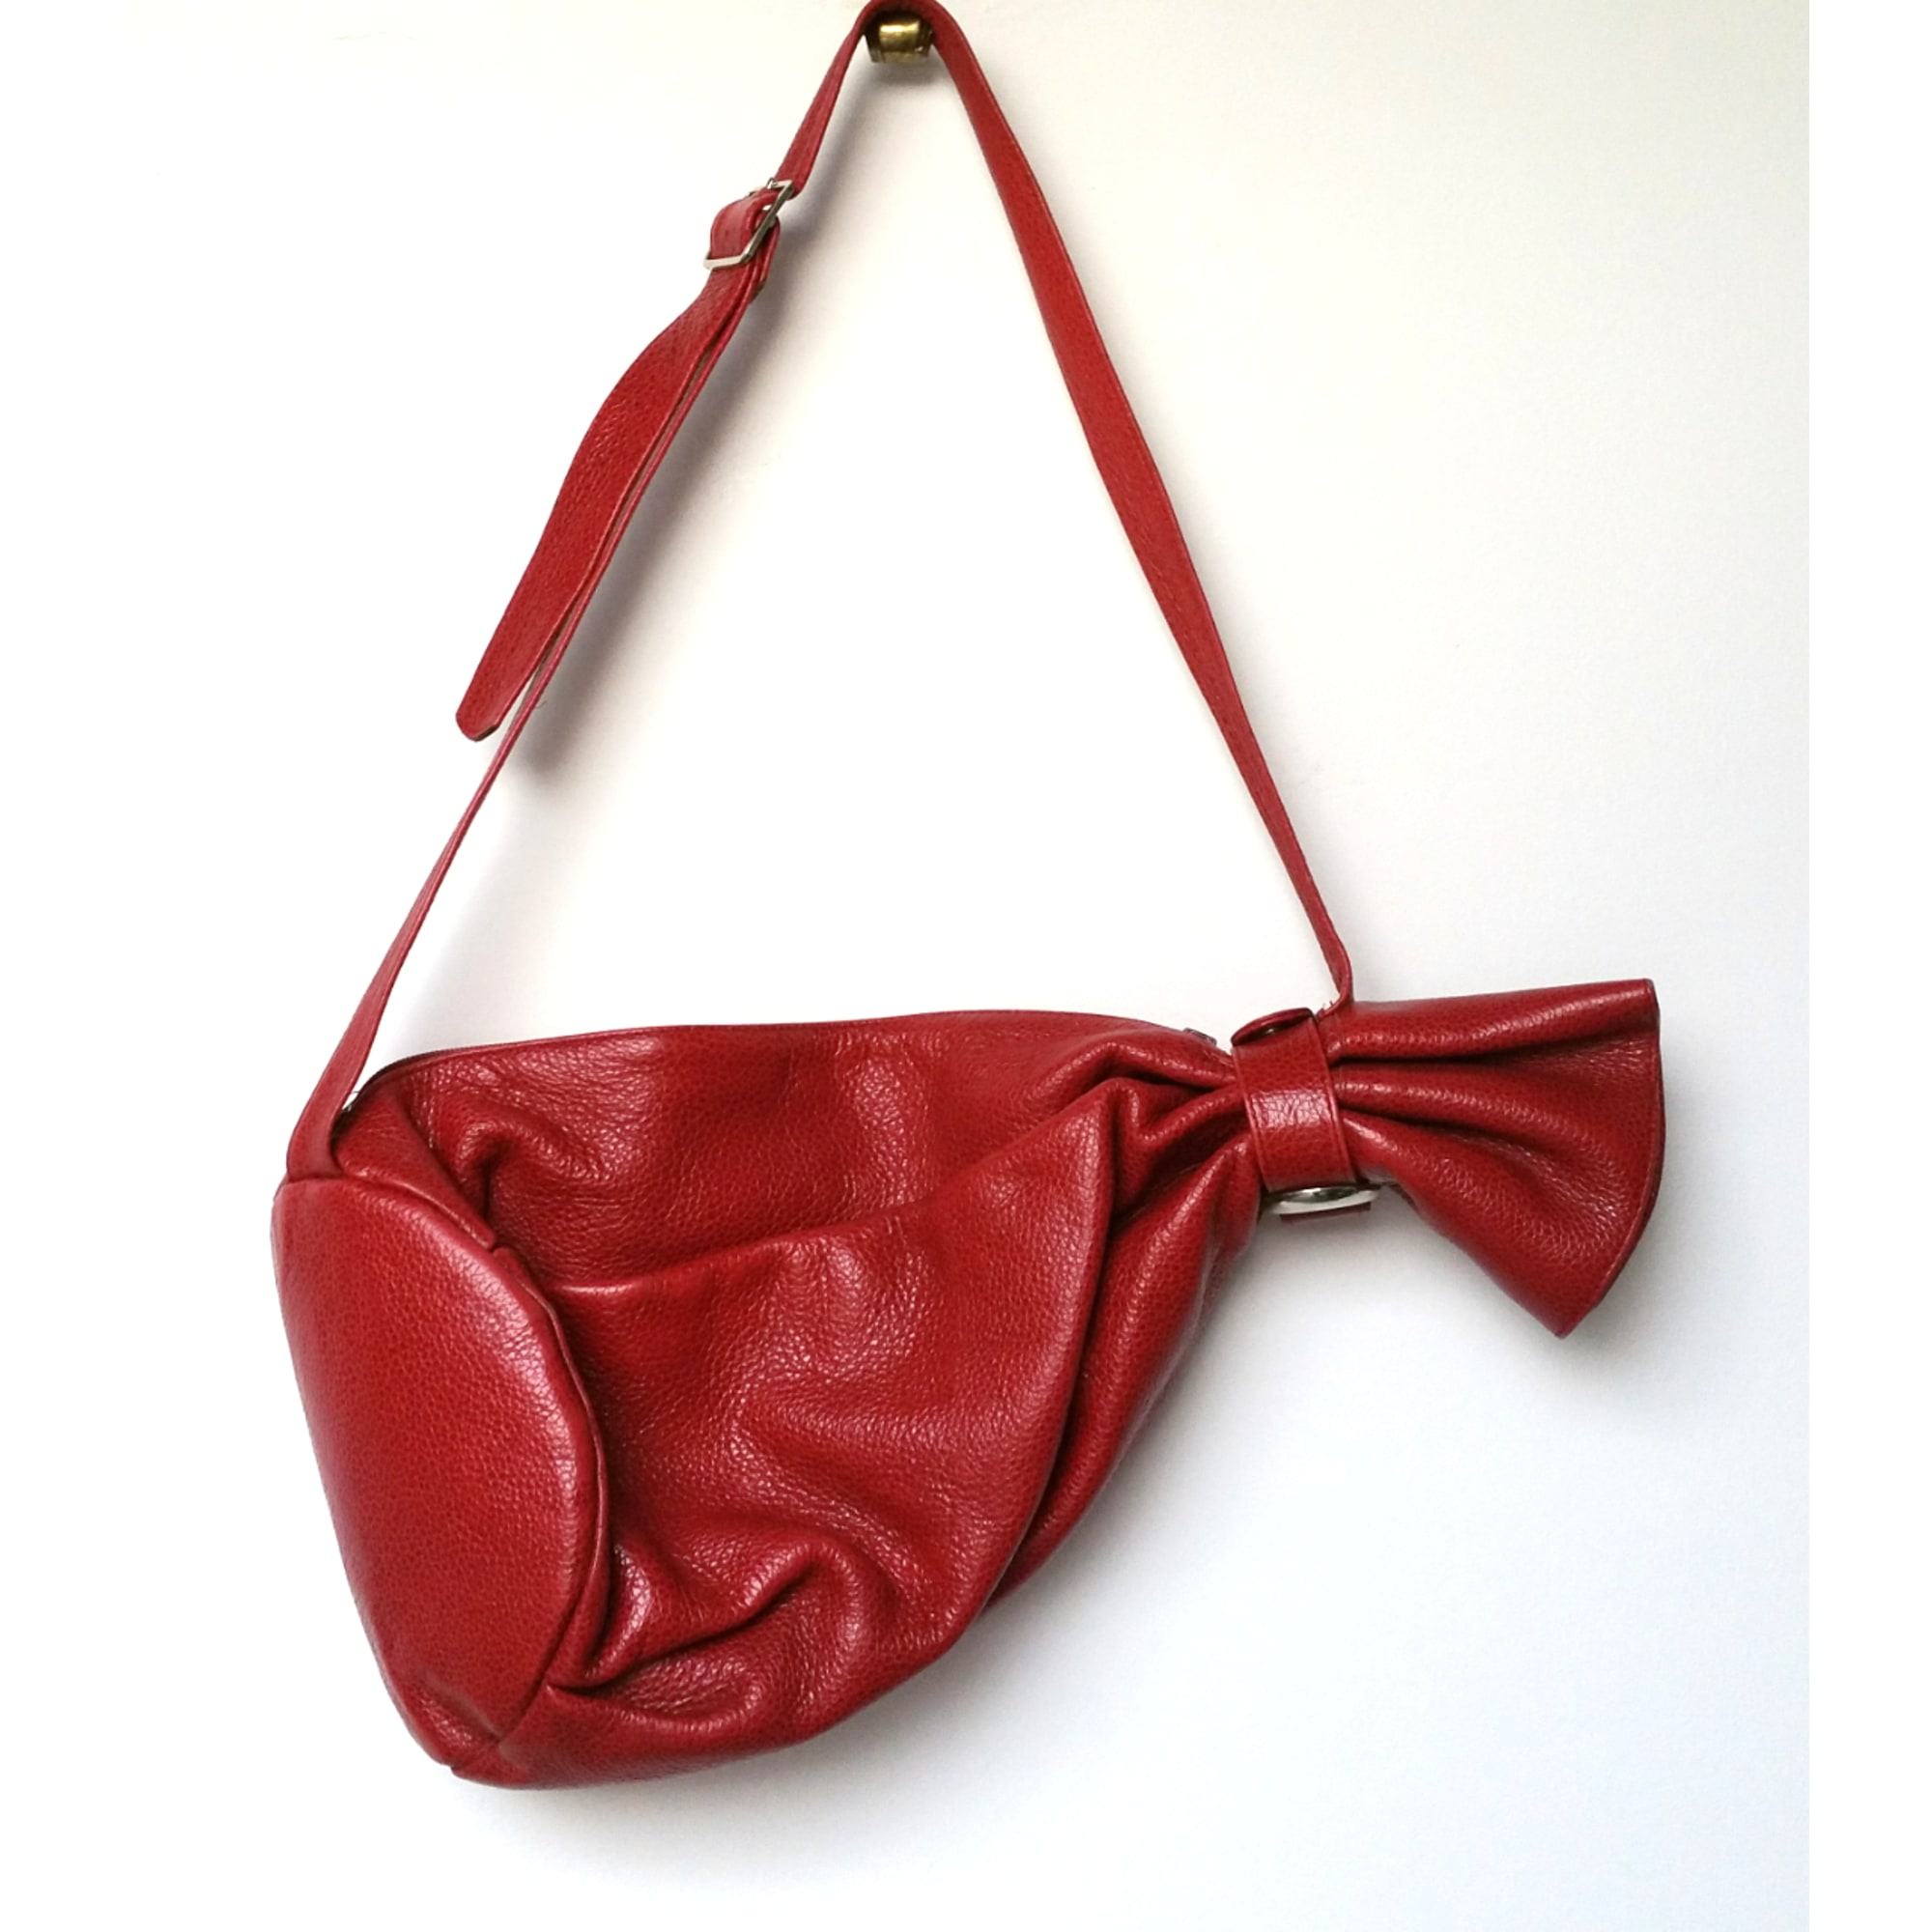 Sac à main en cuir GROOM cuir rouge